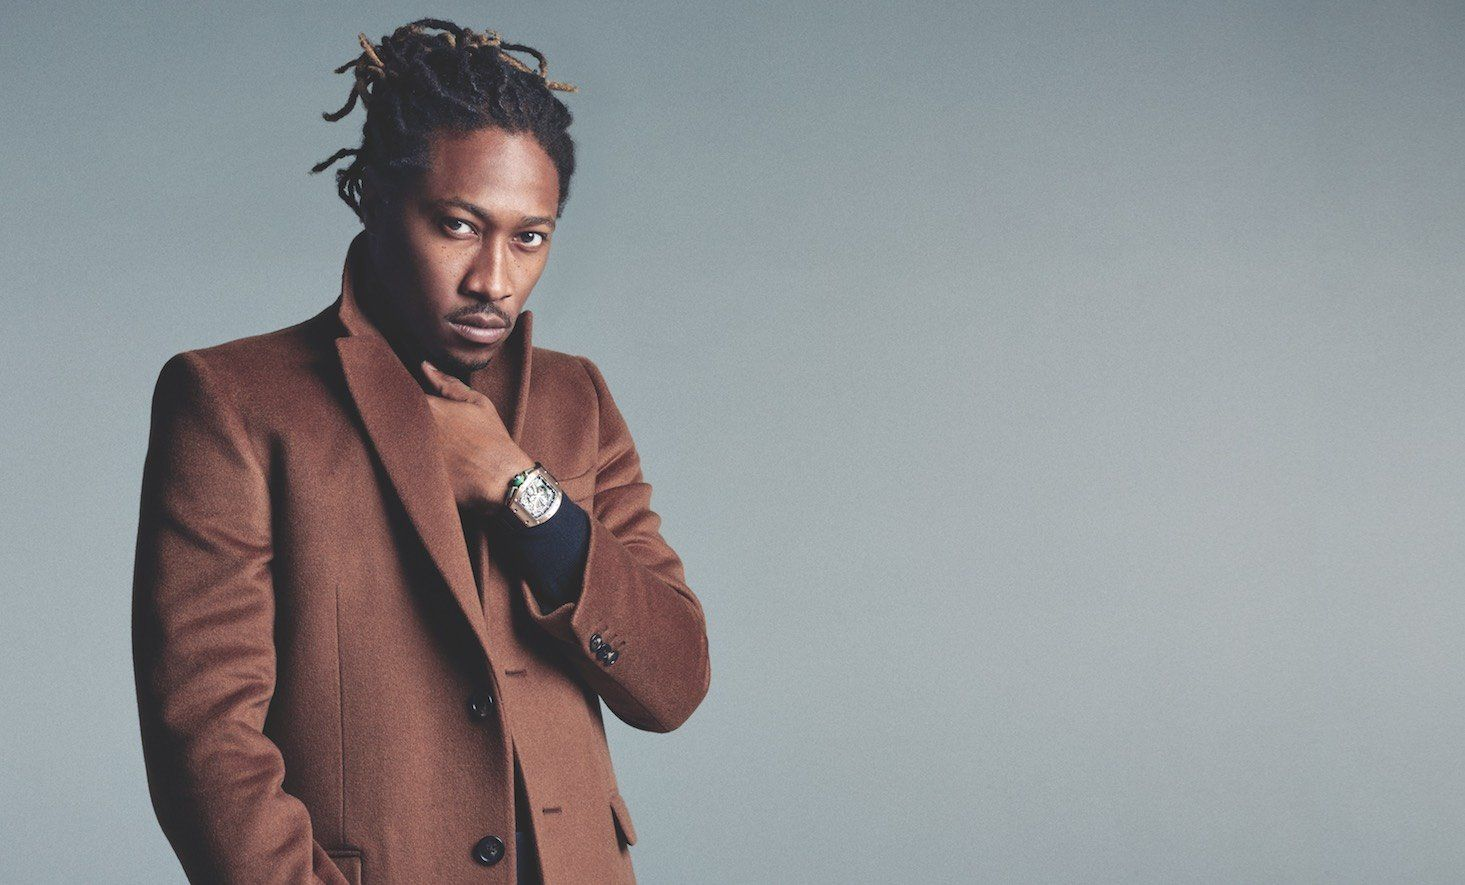 Future Gets Emotional Over The Death Of Juice WRLD -- Never Wanted To Influence Him To Use Drugs #Future, #JuiceWrld celebrityinsider.org #Entertainment #celebrityinsider #celebritynews #celebrities #celebrity